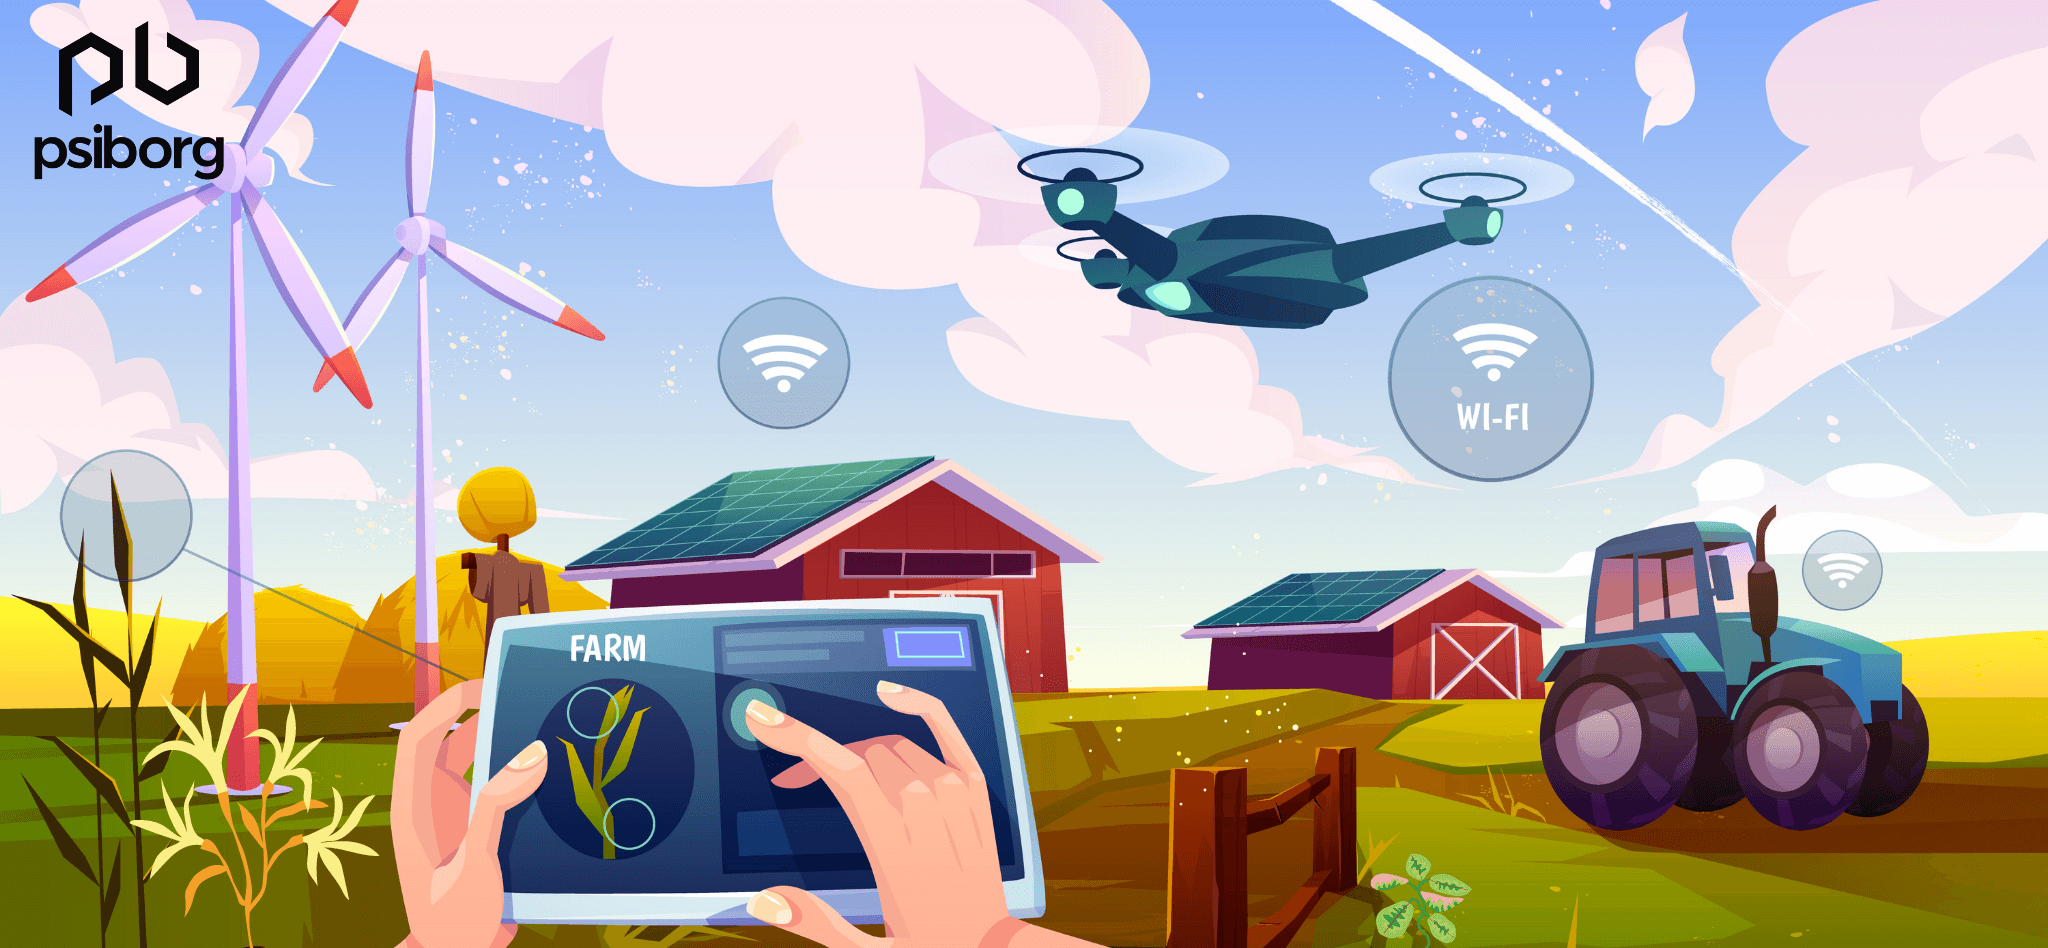 Iot Sensor system in agriculture